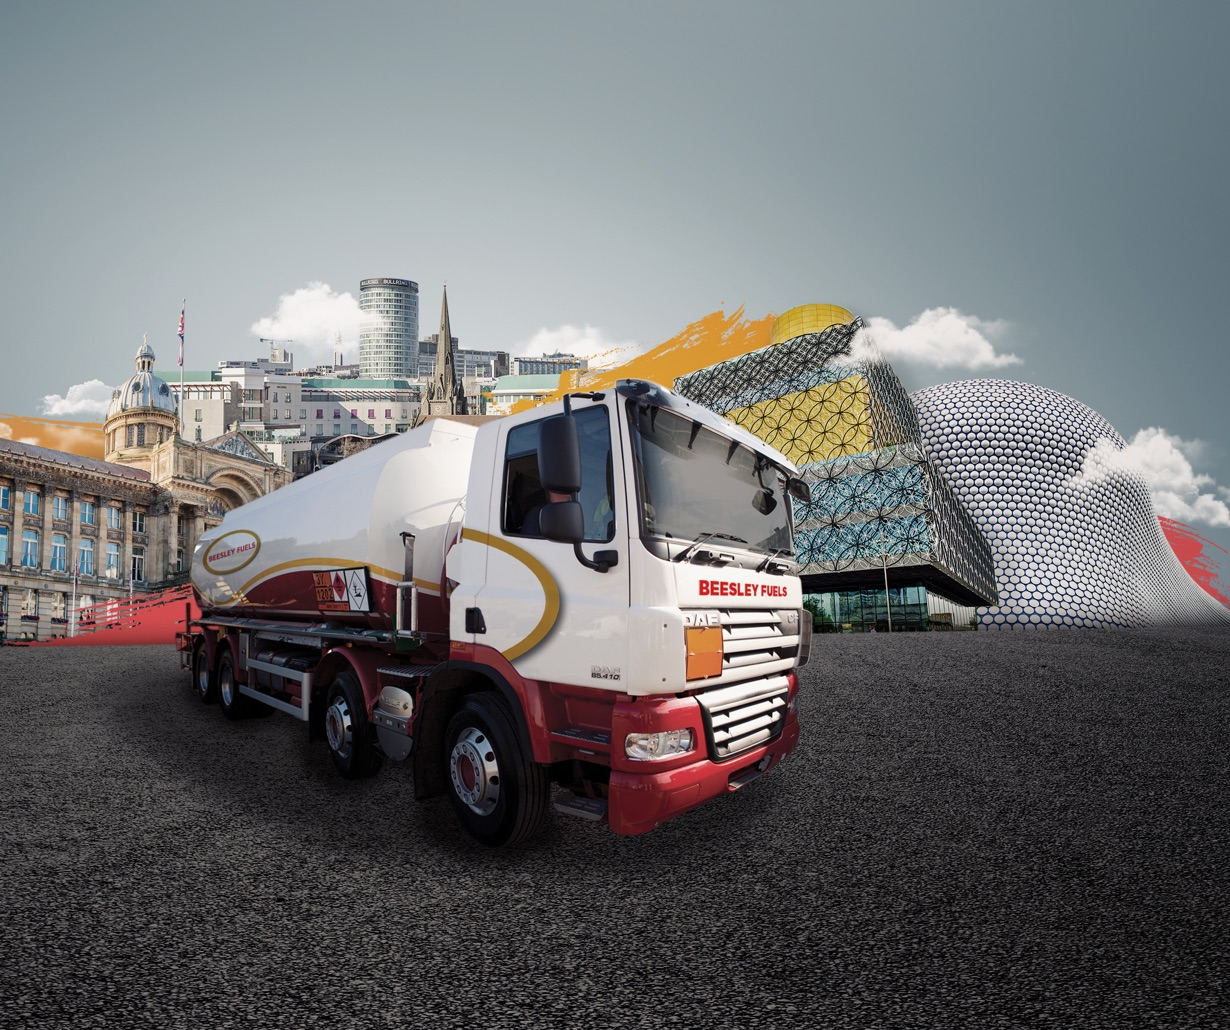 Beesley Fuels - Fuels and Lubricants Delivered Nationwide